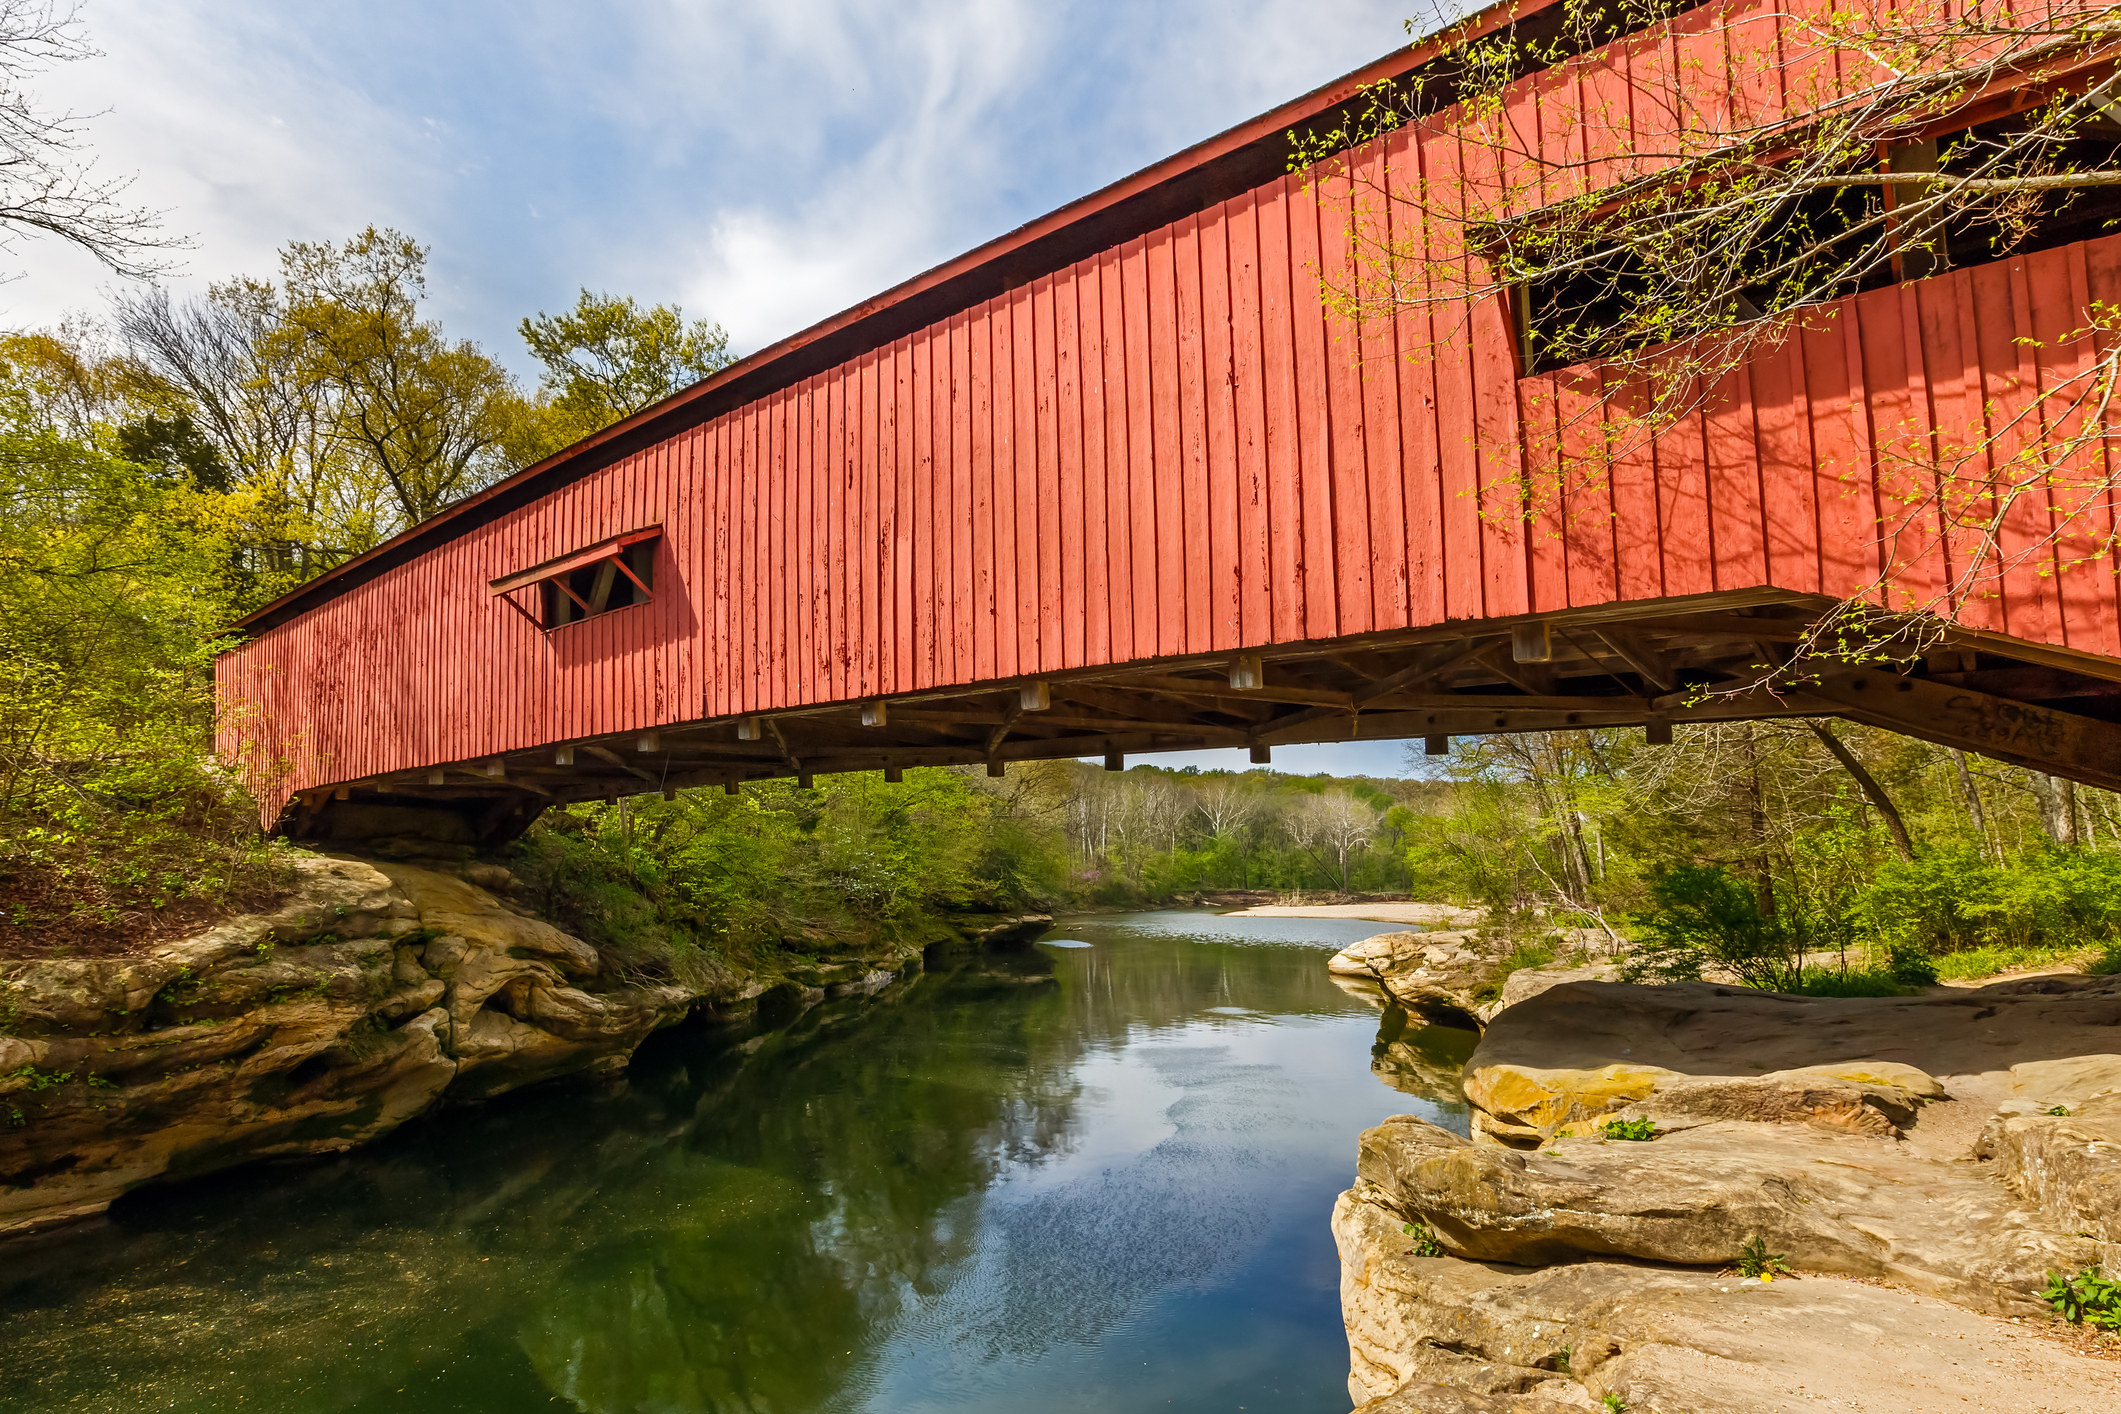 The Narrows Covered Bridge crosses Sugar Creek on the eastern edge of Parke County